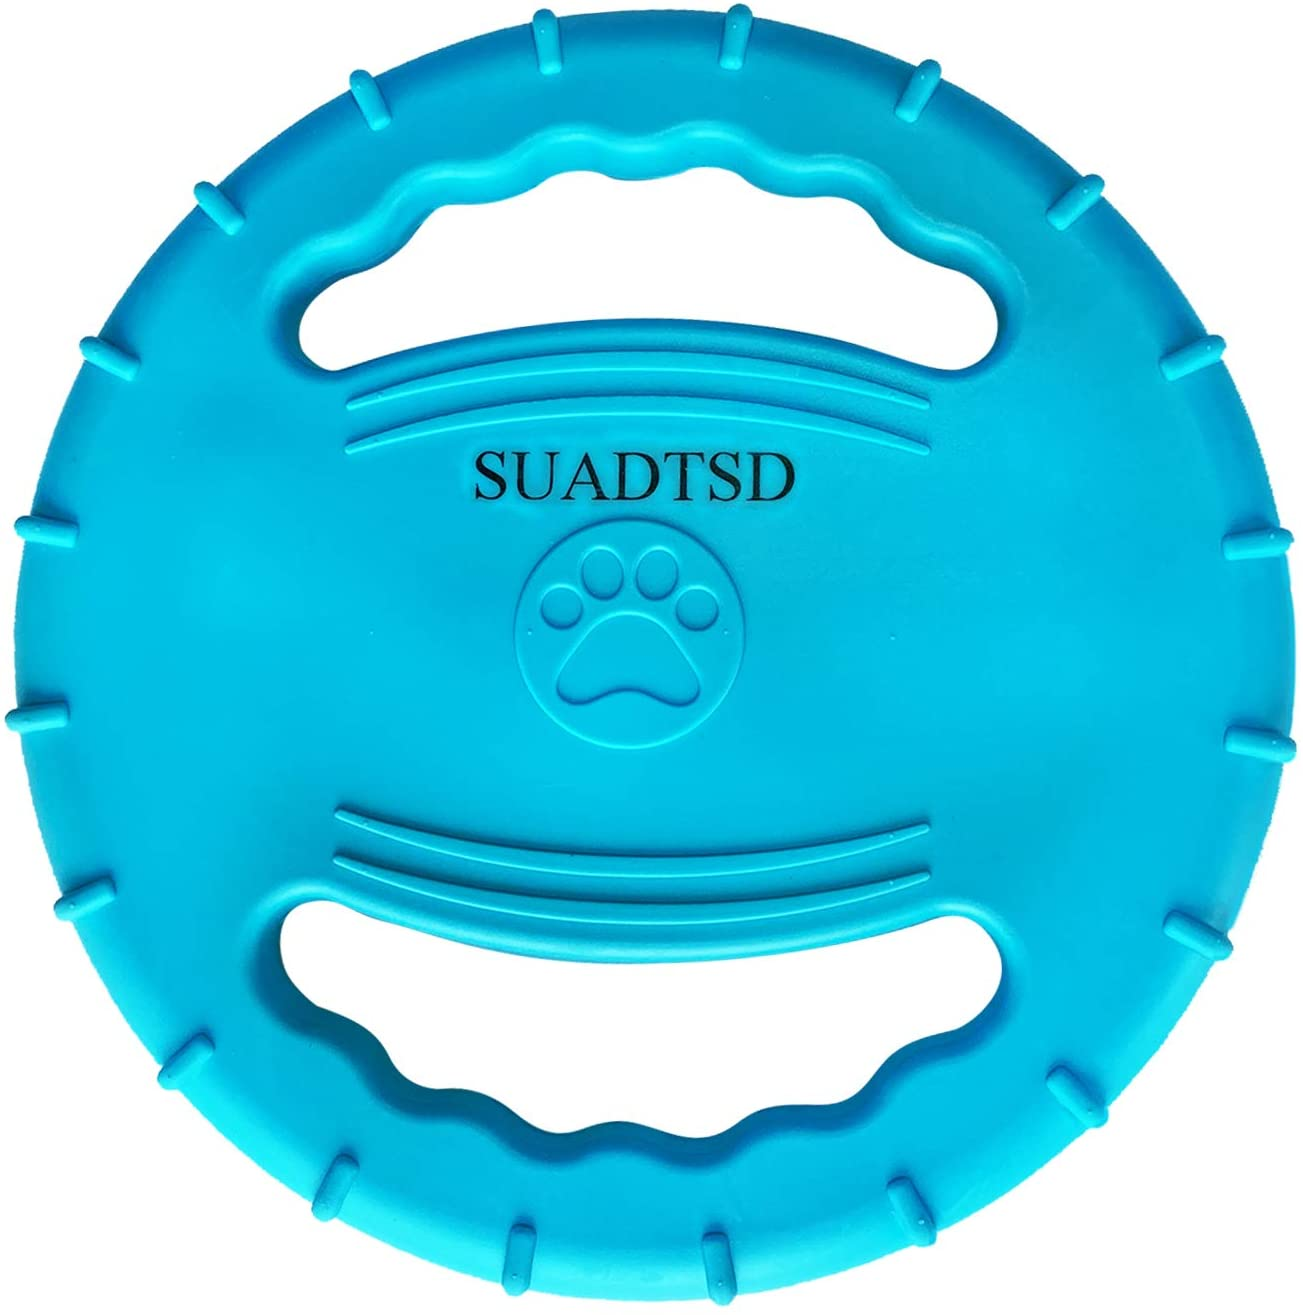 SUADTSD Dog Frisbee Rubber Dog Bite Resistant Outdoor Training Fetch Sound Maker Float Pet Toy,Tough Training Flying Disc Play Toy for Dog,Interactive Dog Toys,Float in Water Safe on Teeth